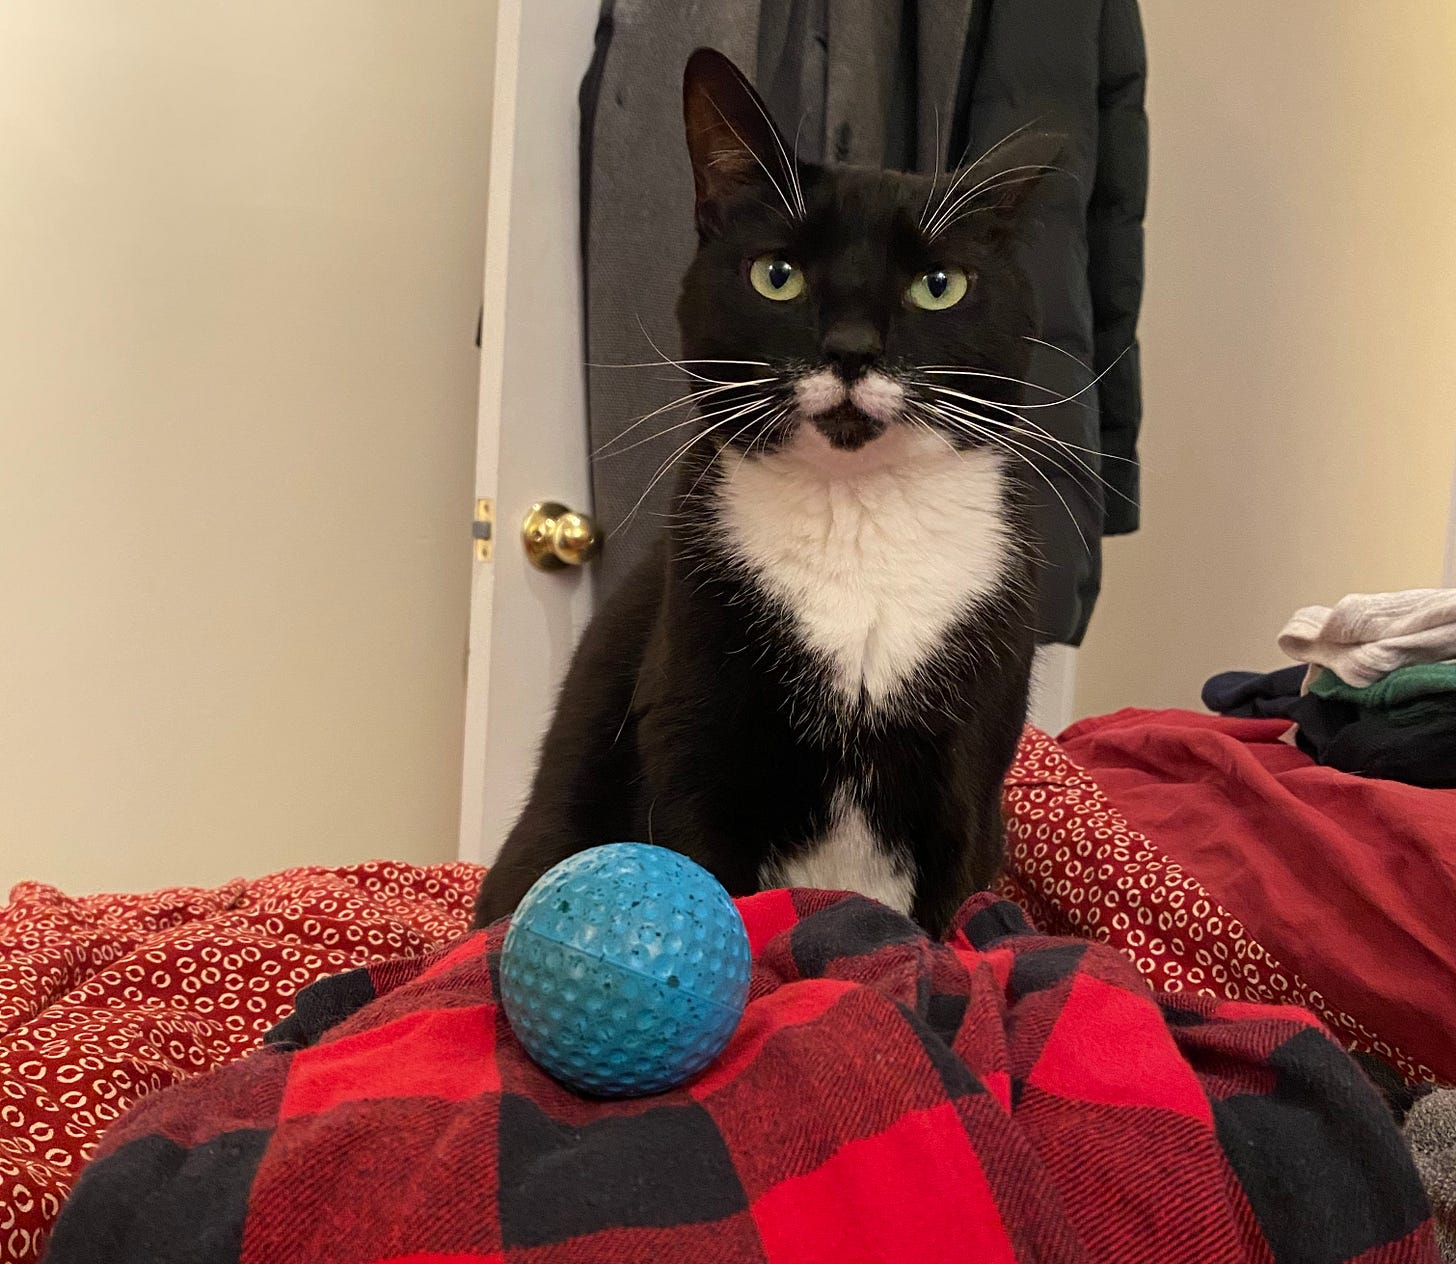 A black and white cat stares at the camera. Her blue bouncy ball sits in the foreground.